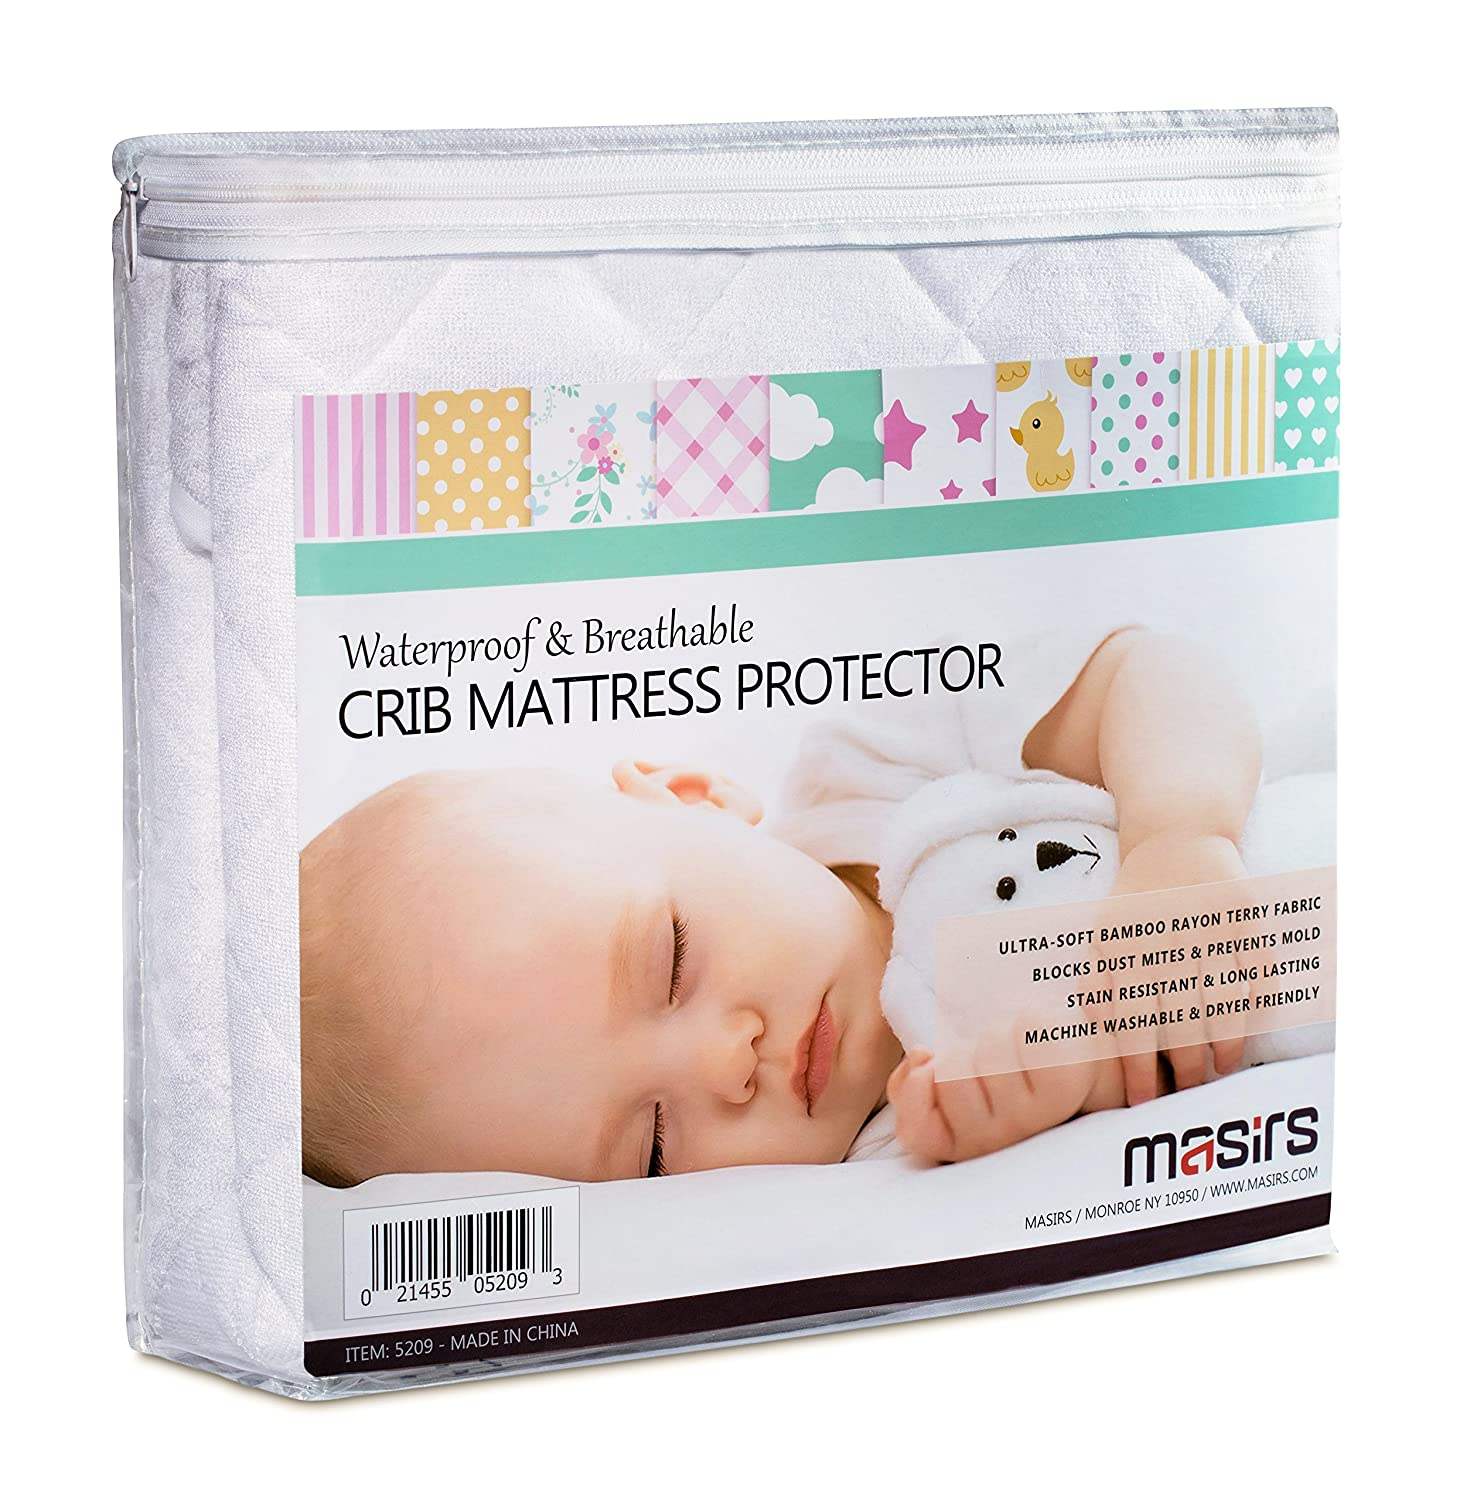 Crib Mattress Protector Cover - Comfortable, Breathable and Waterproof Bamboo Material. Keep the Crib Mattress Clean and Protected and Give your Baby a Cozy Restful Sleep. Machine and Dryer Friendly. Masirs 5209